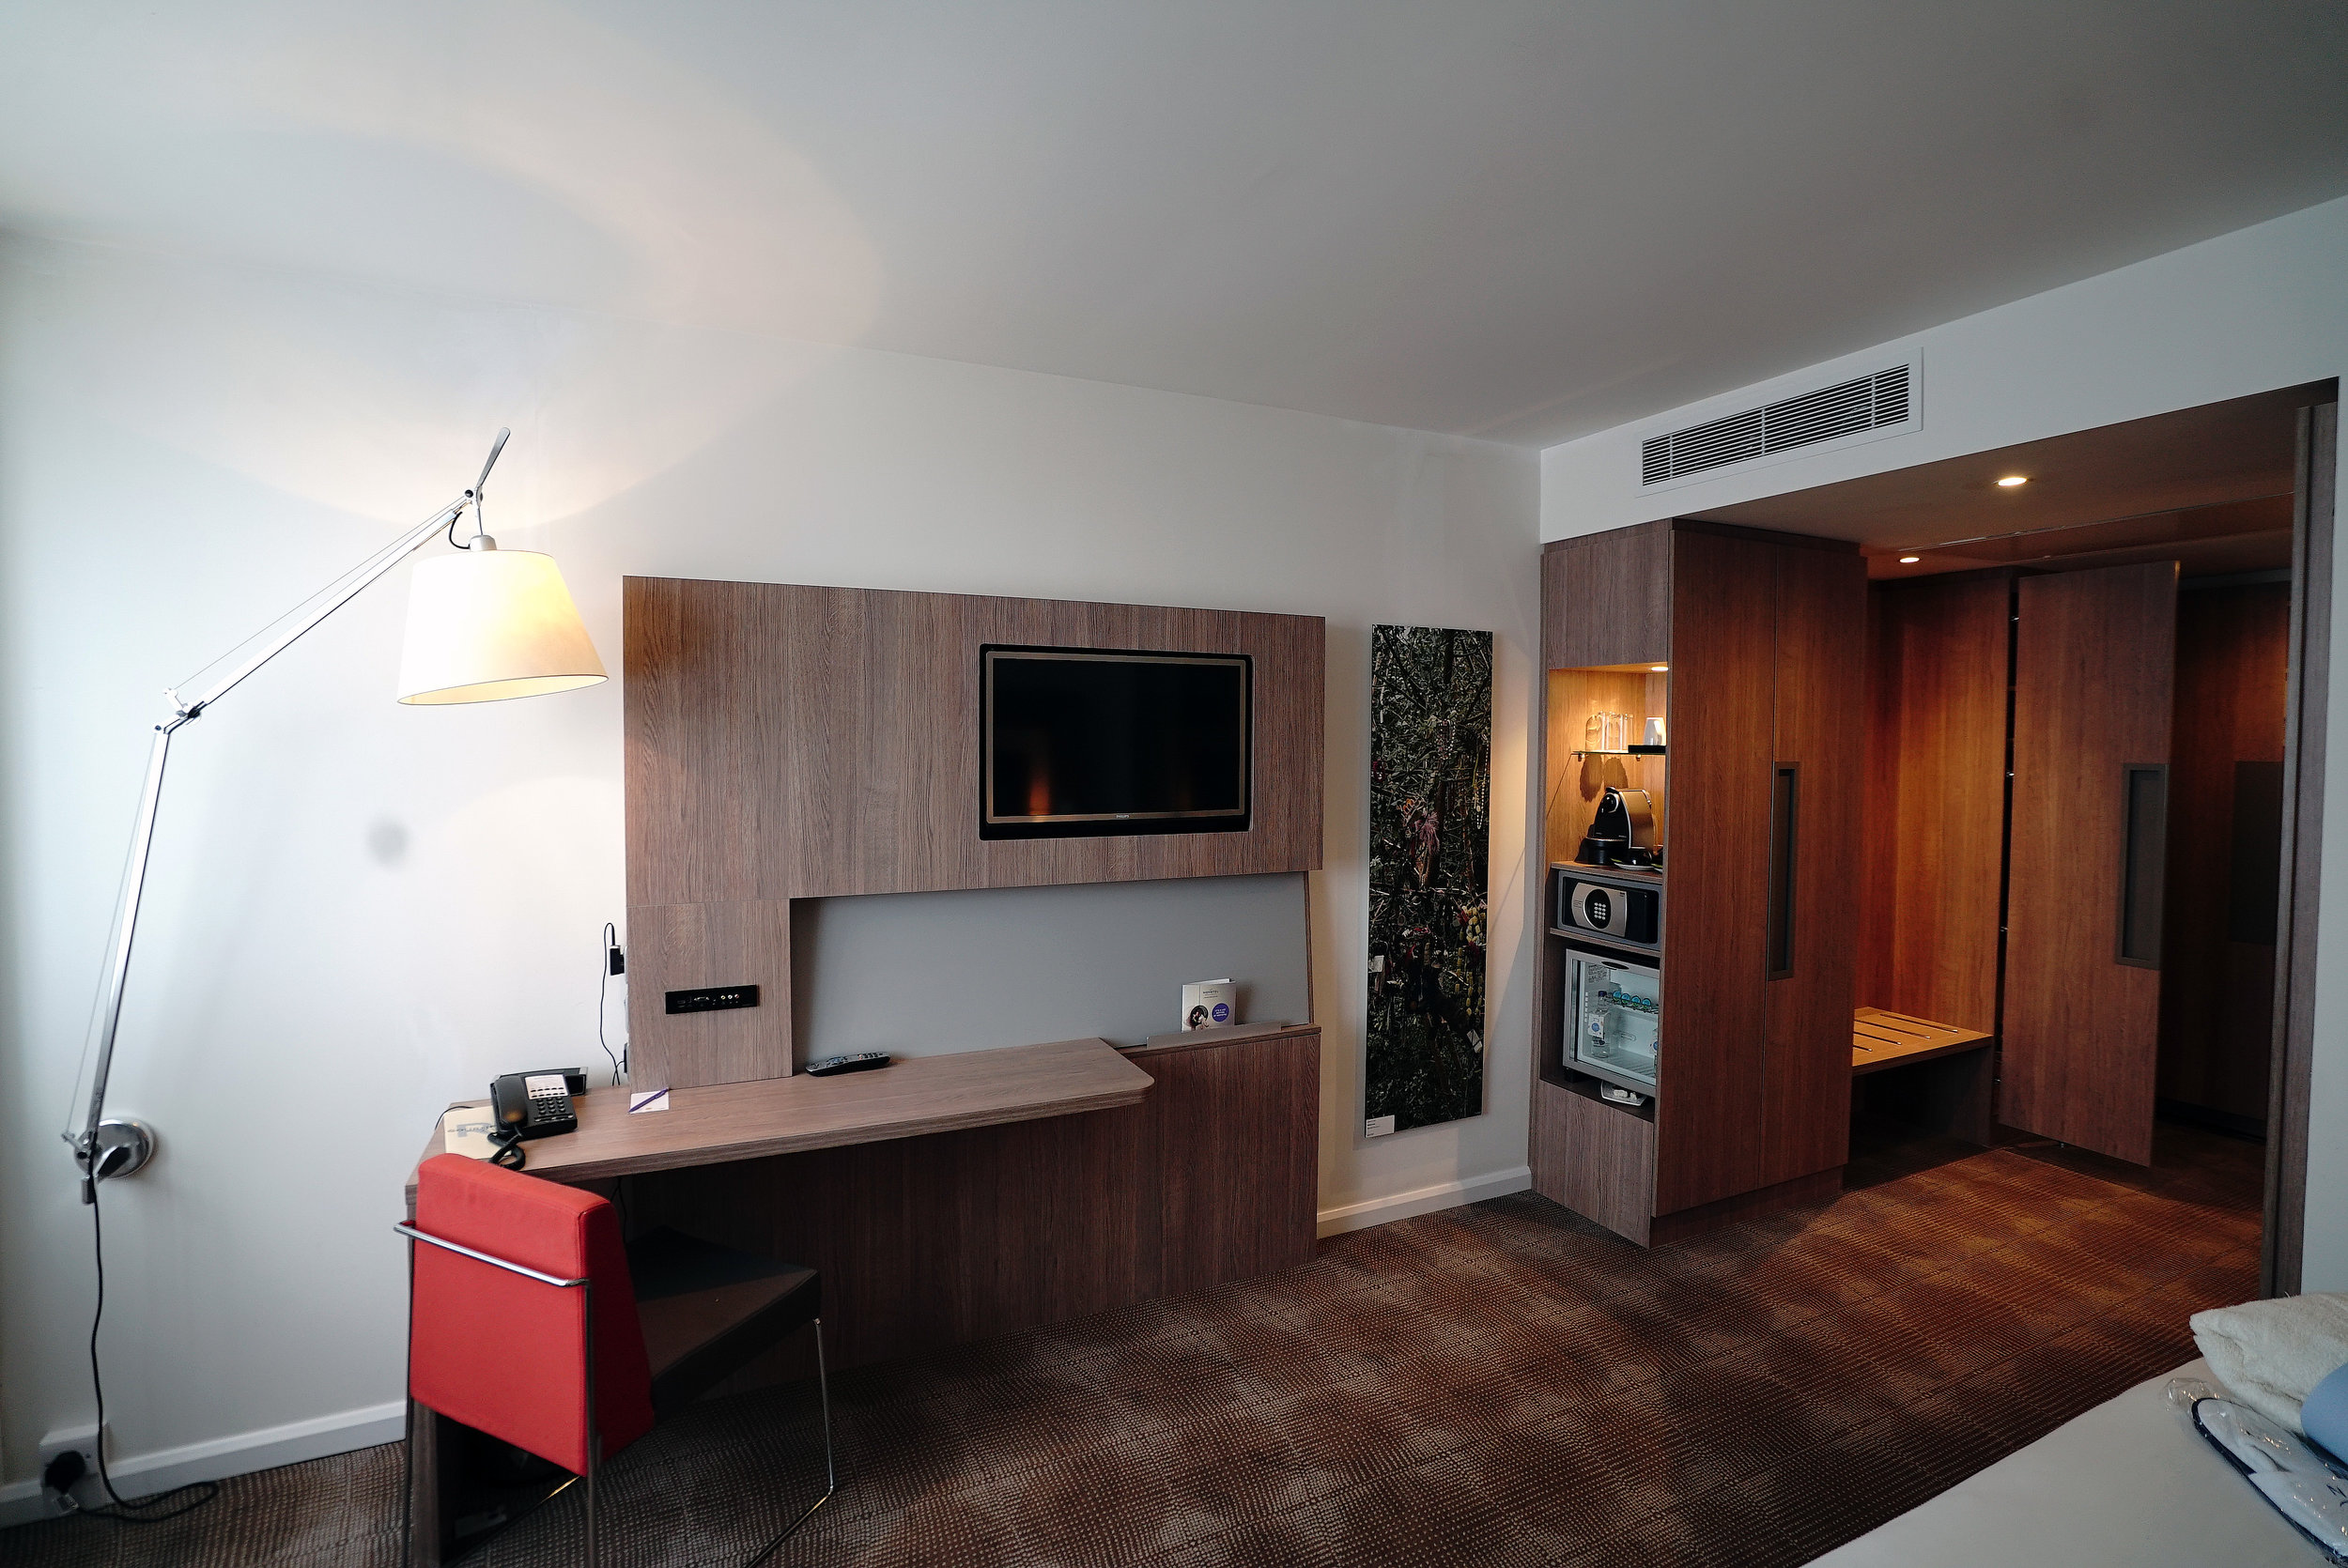 Novotel Brentford Hotel Bedroom 2 L.jpg